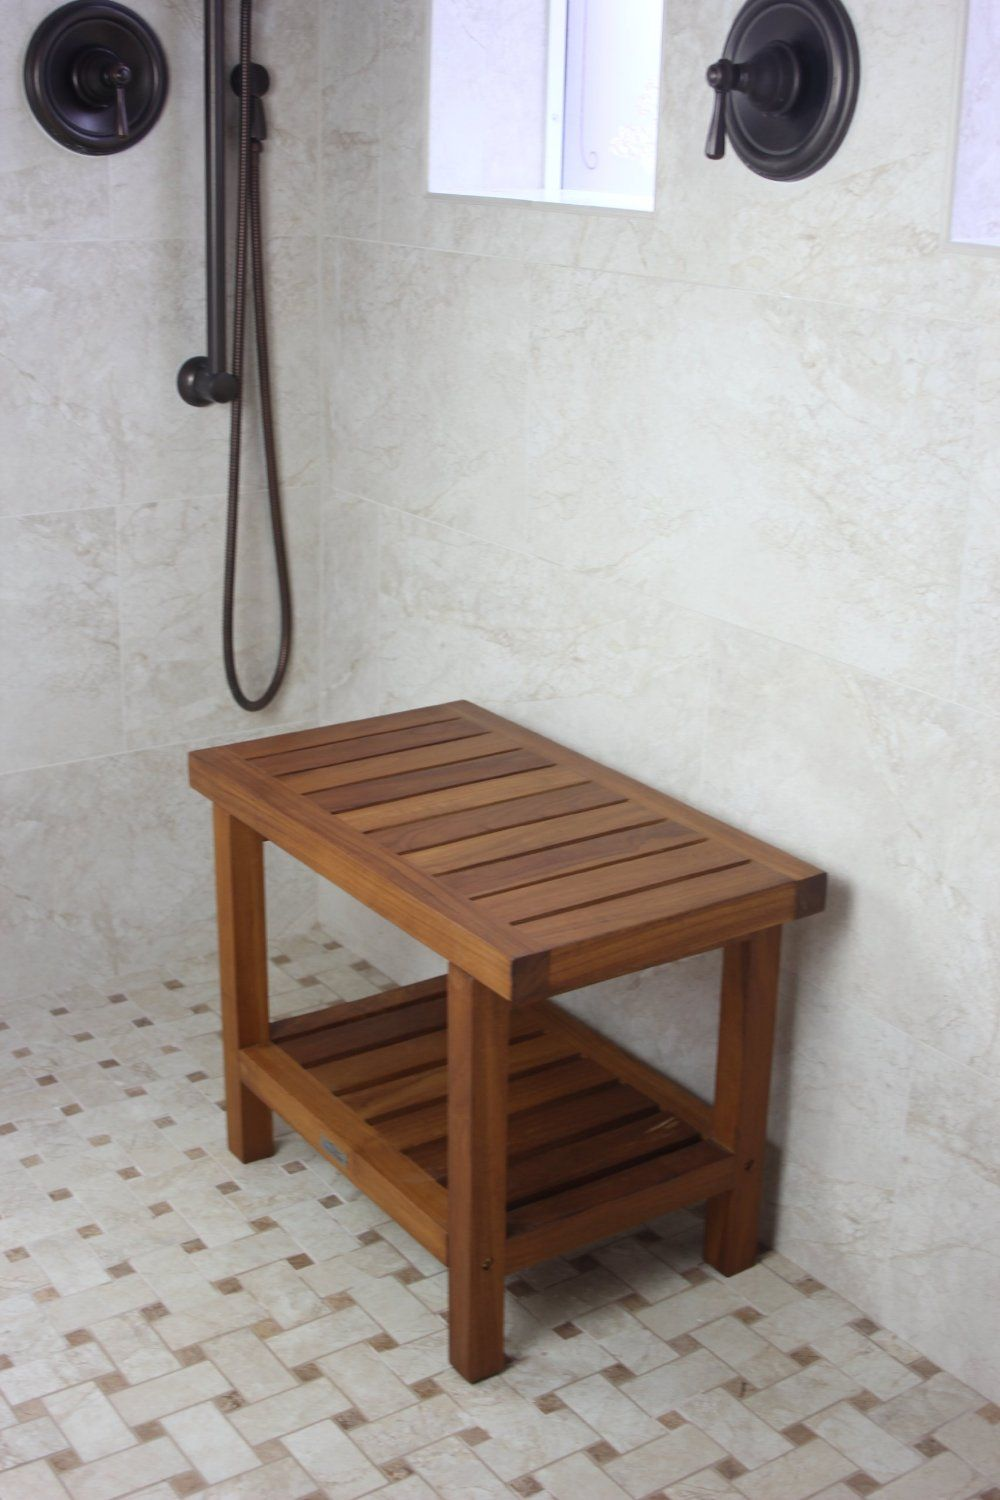 Teak Shower Bench | Teak Shower Stool | Shower Chairs For Elderly ...